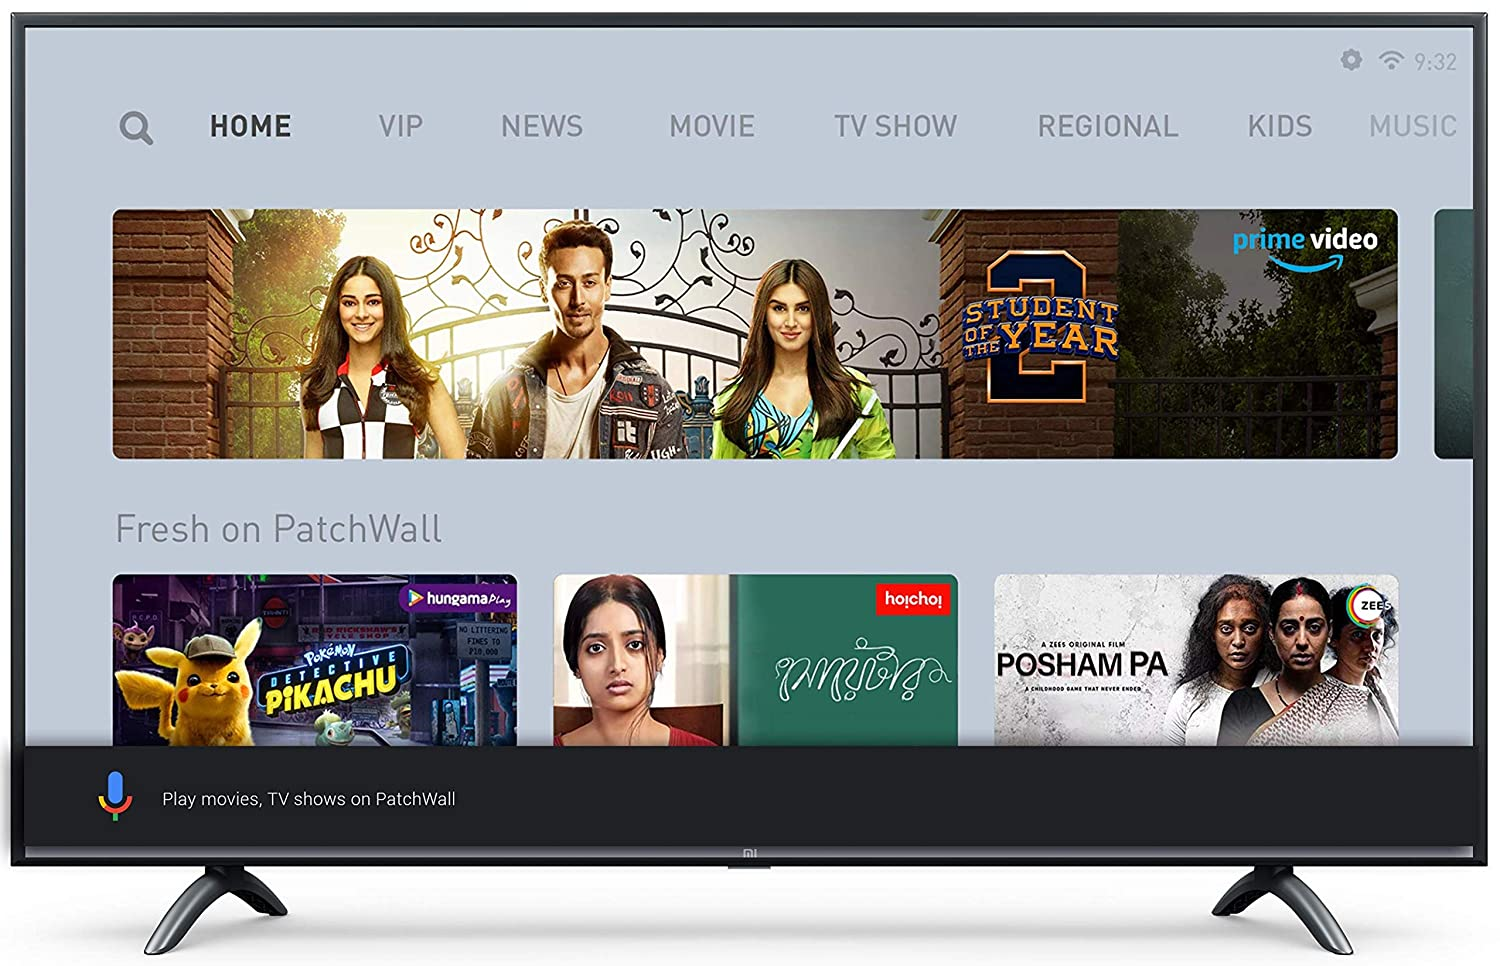 Mi LED TV 4X 138.8 cm (55 Inches) Ultra HD Android TV